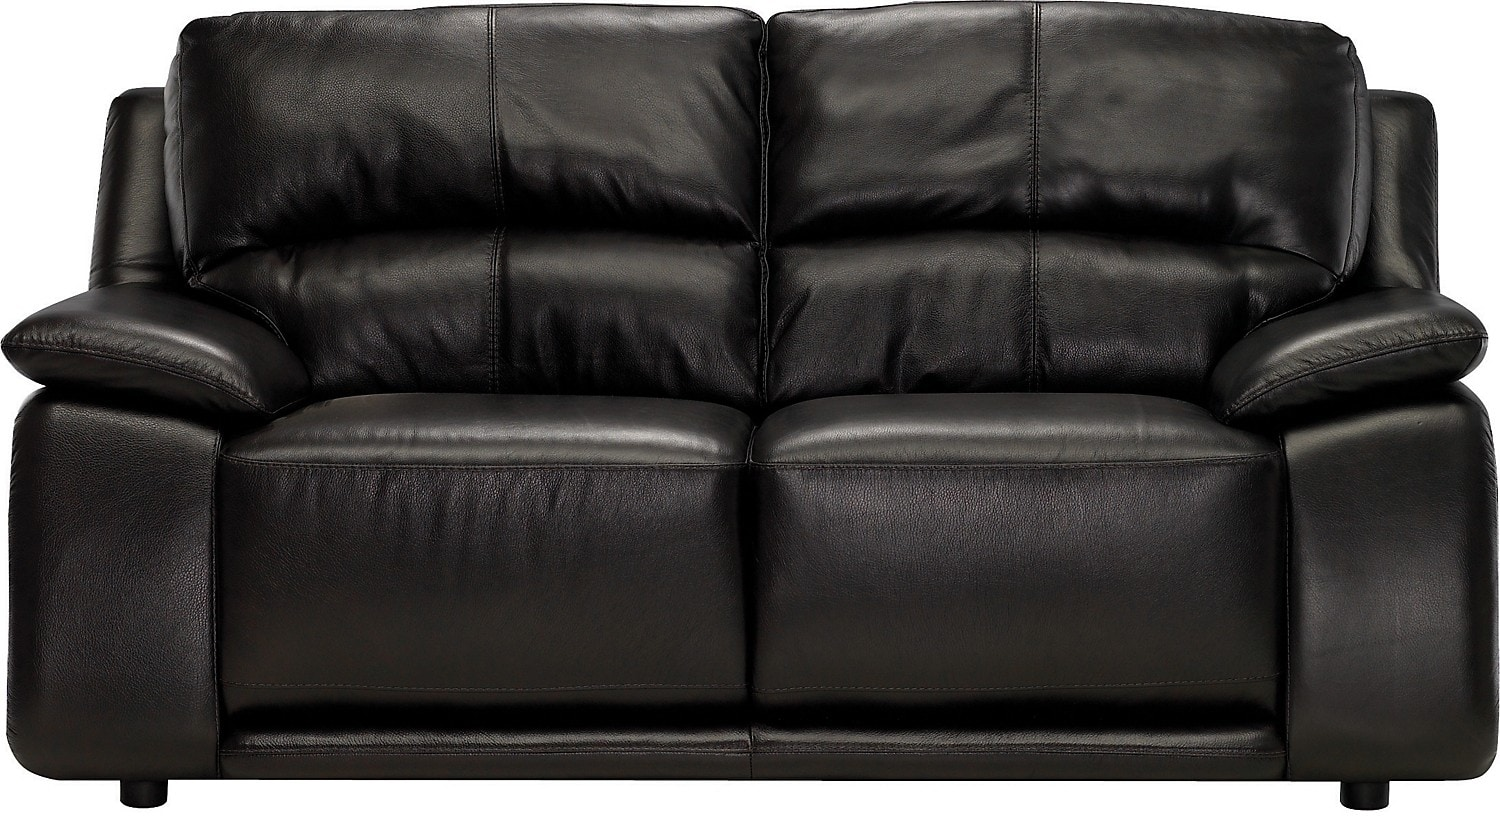 Chateau d'Ax 100% Genuine Leather Loveseat - Dark Chocolate